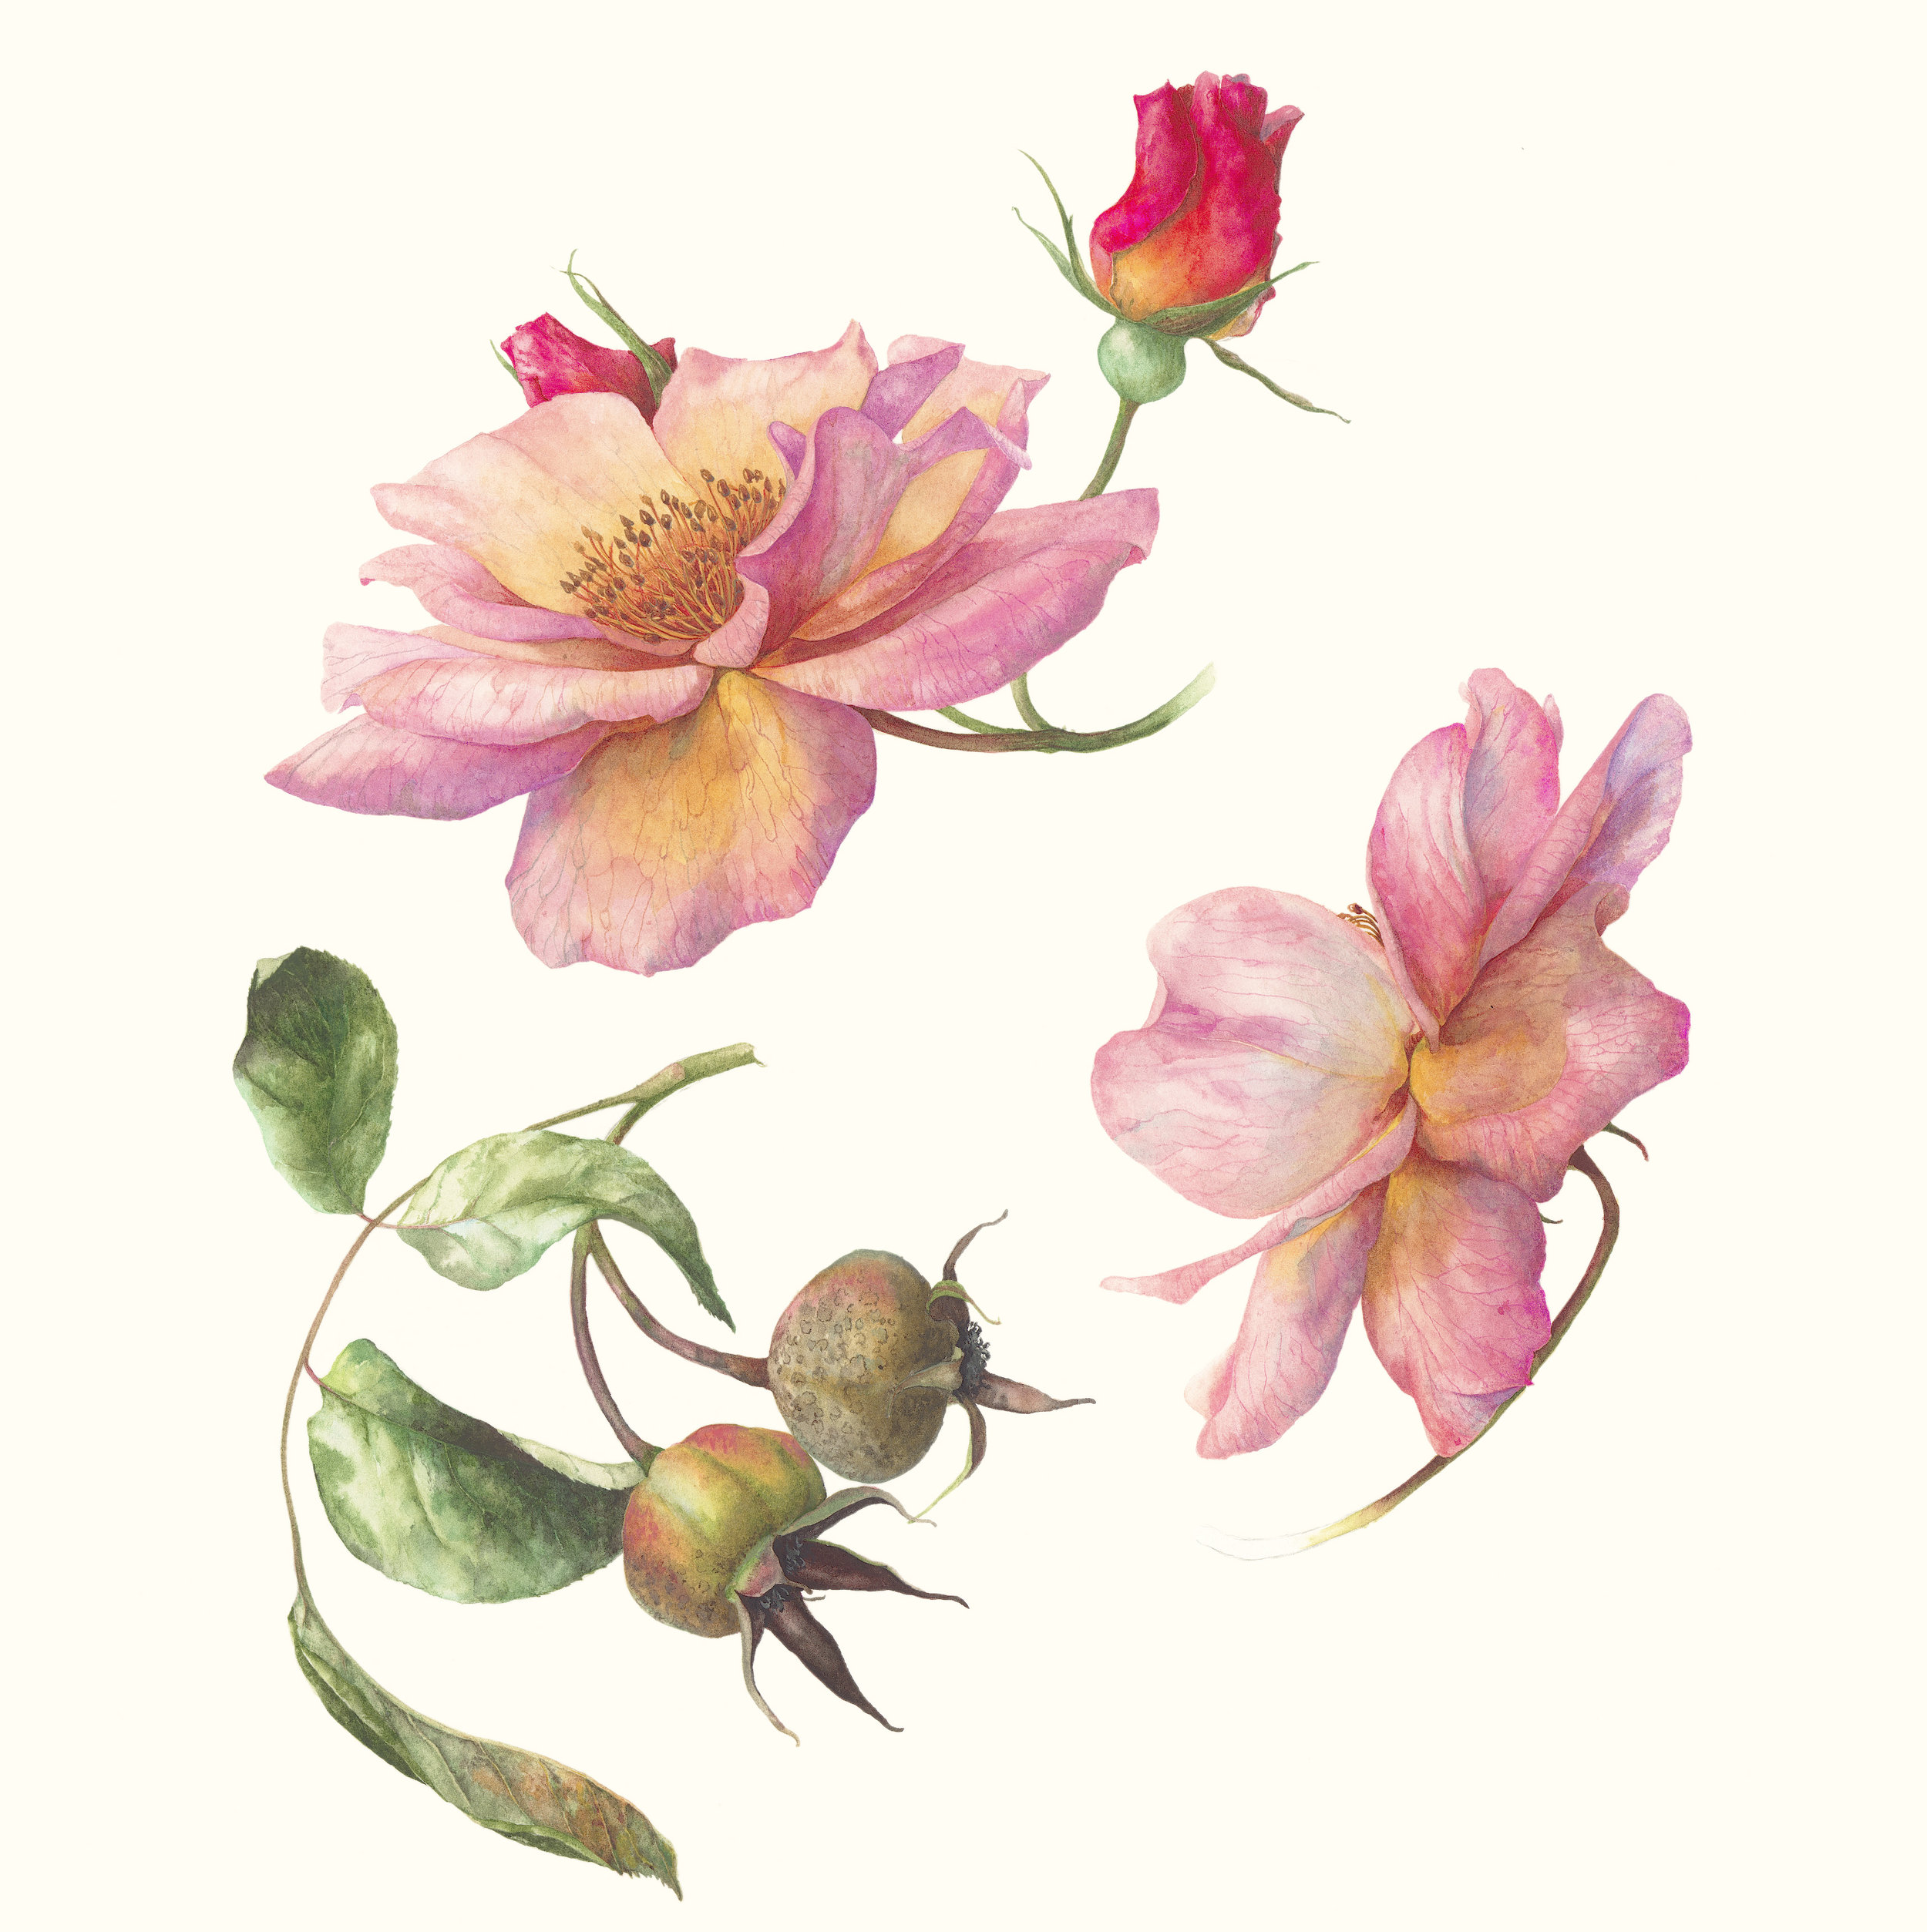 Rose in Summer and Autumn  watercolour on paper  29 x 31 cm image  52 x 55 cm framed  SOLD